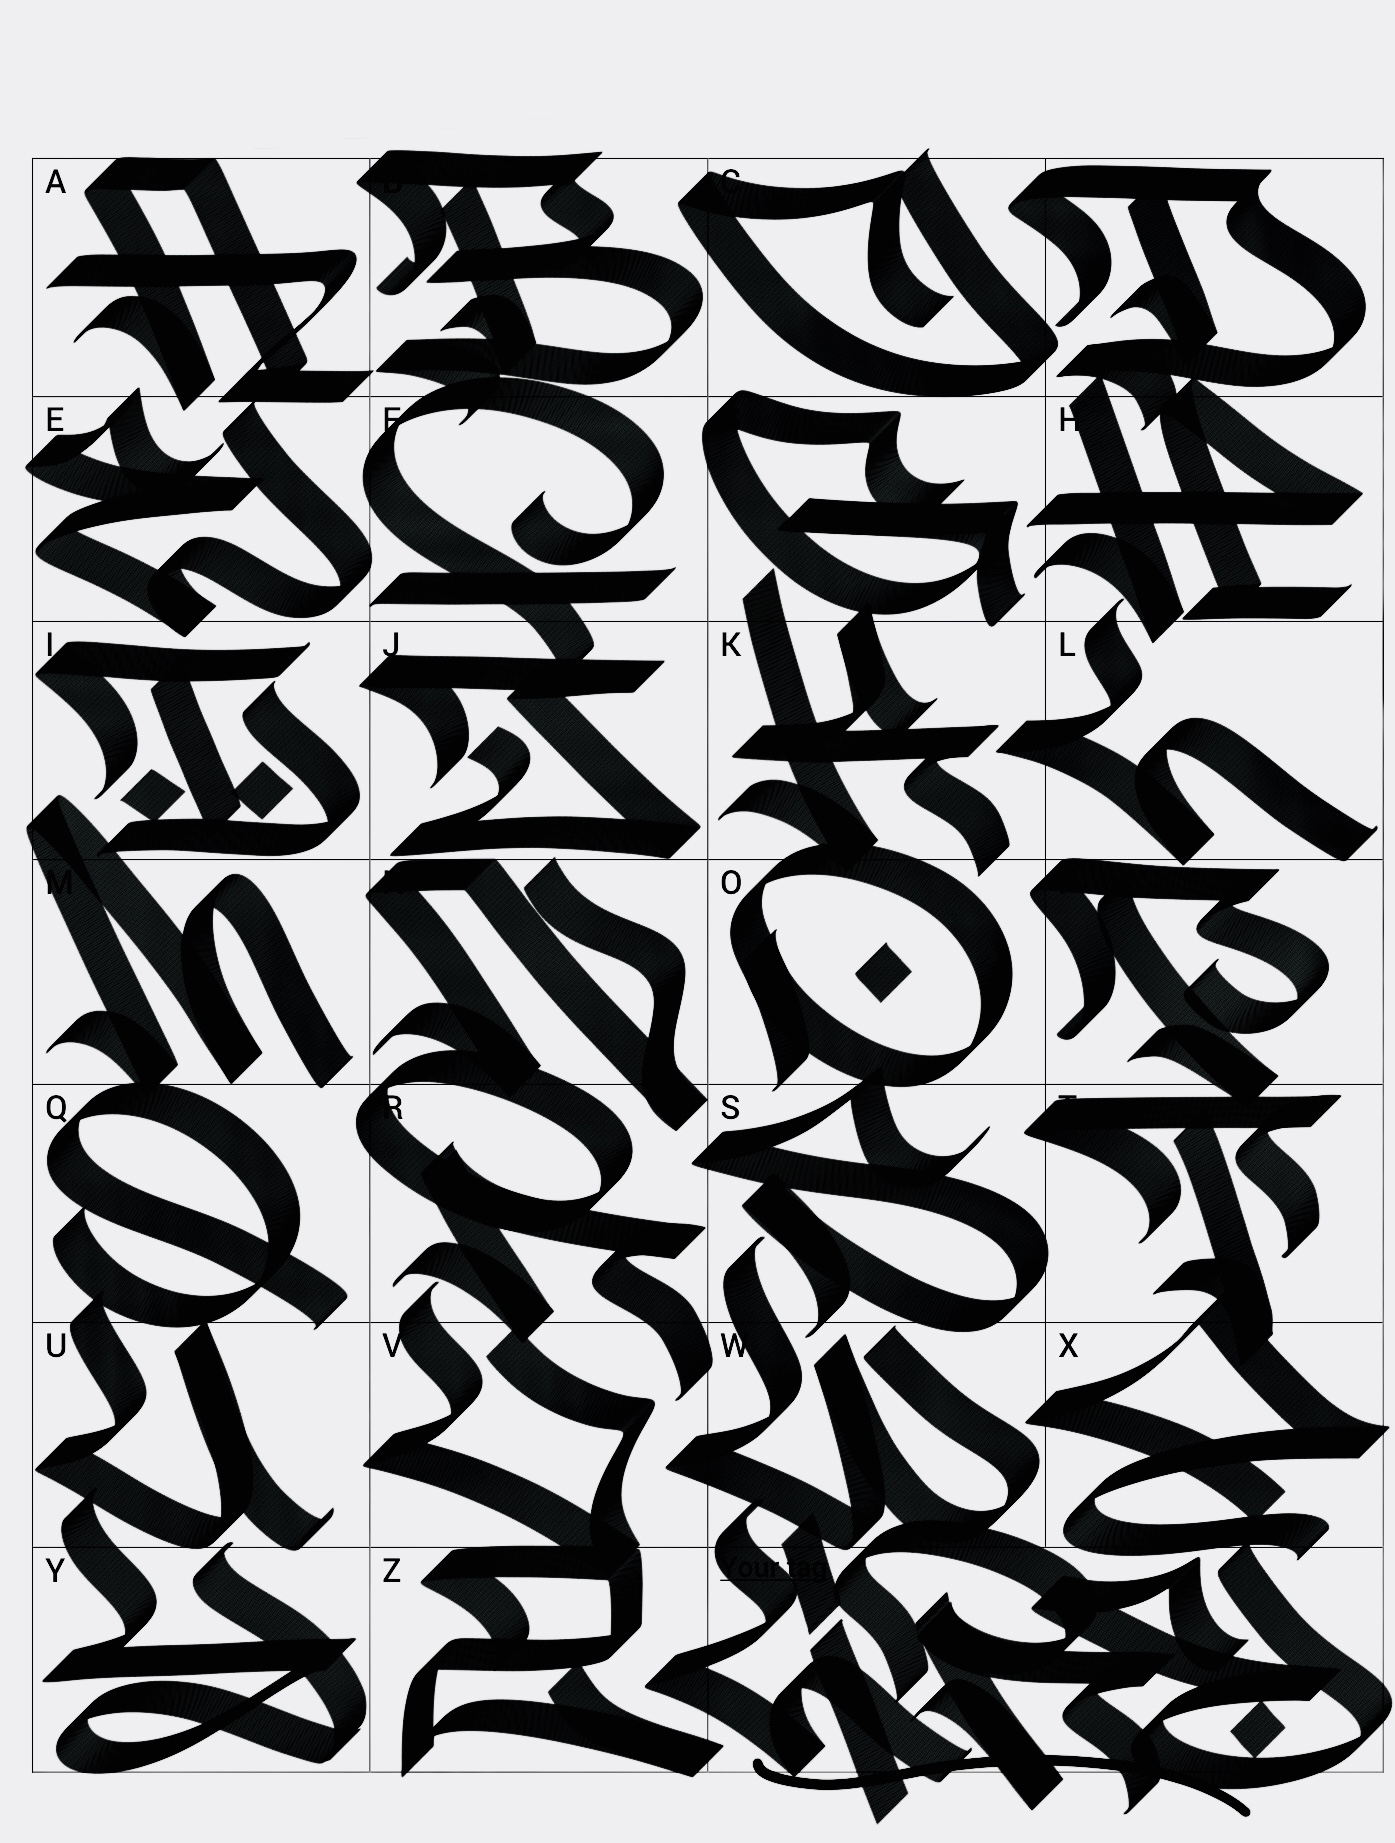 Alfabet Graffiti graffiti letters: 61 graffiti artists share their styles | bombing